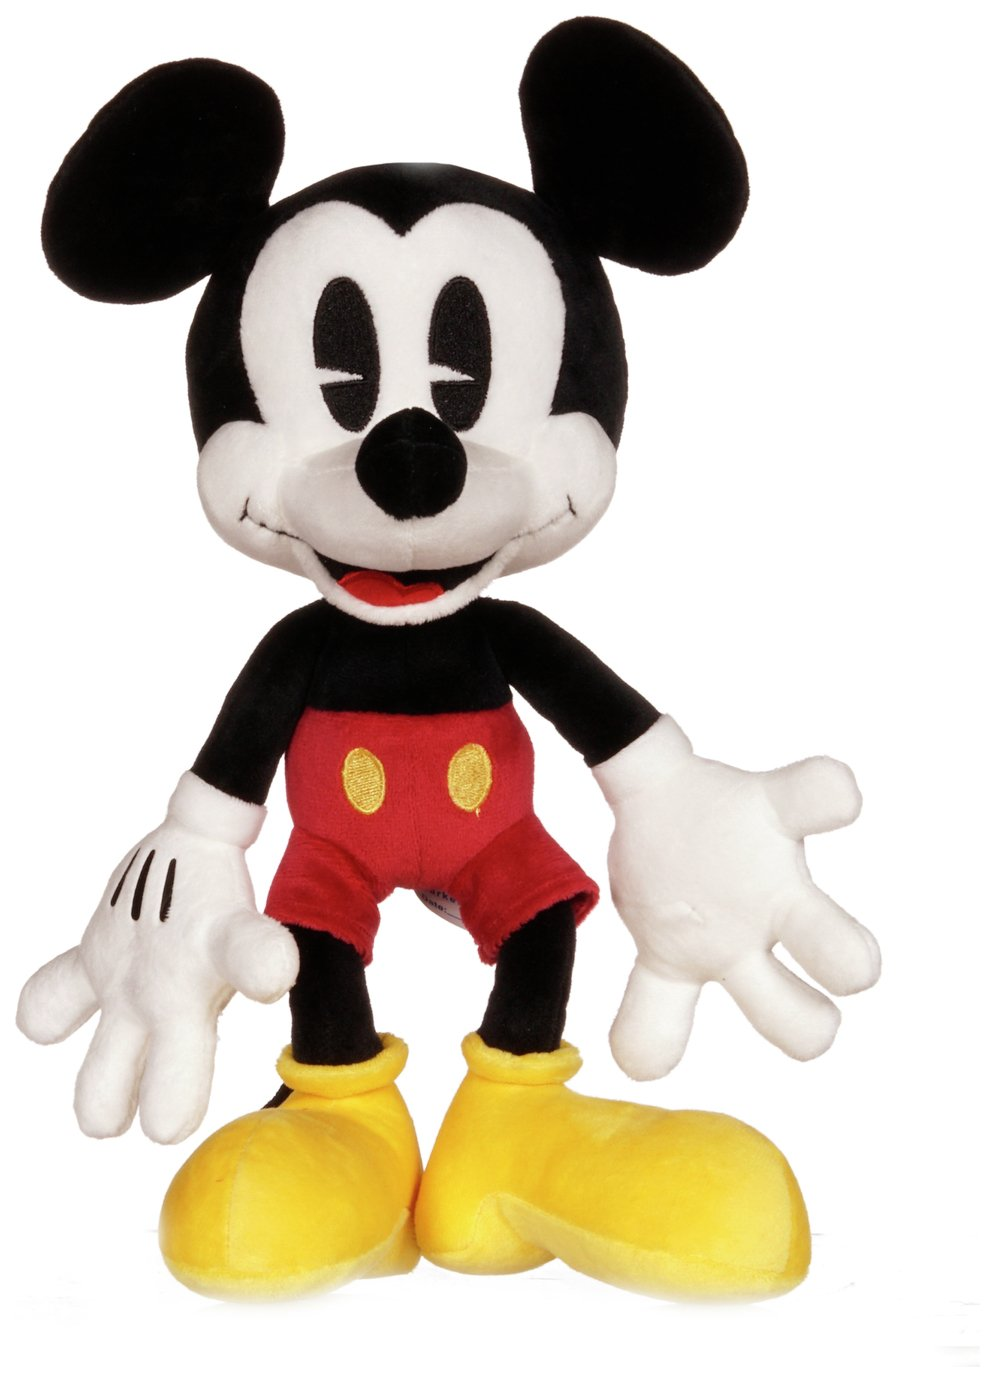 Disney Mickey Mouse 90th Anniversary Soft Toy - 10 Inch